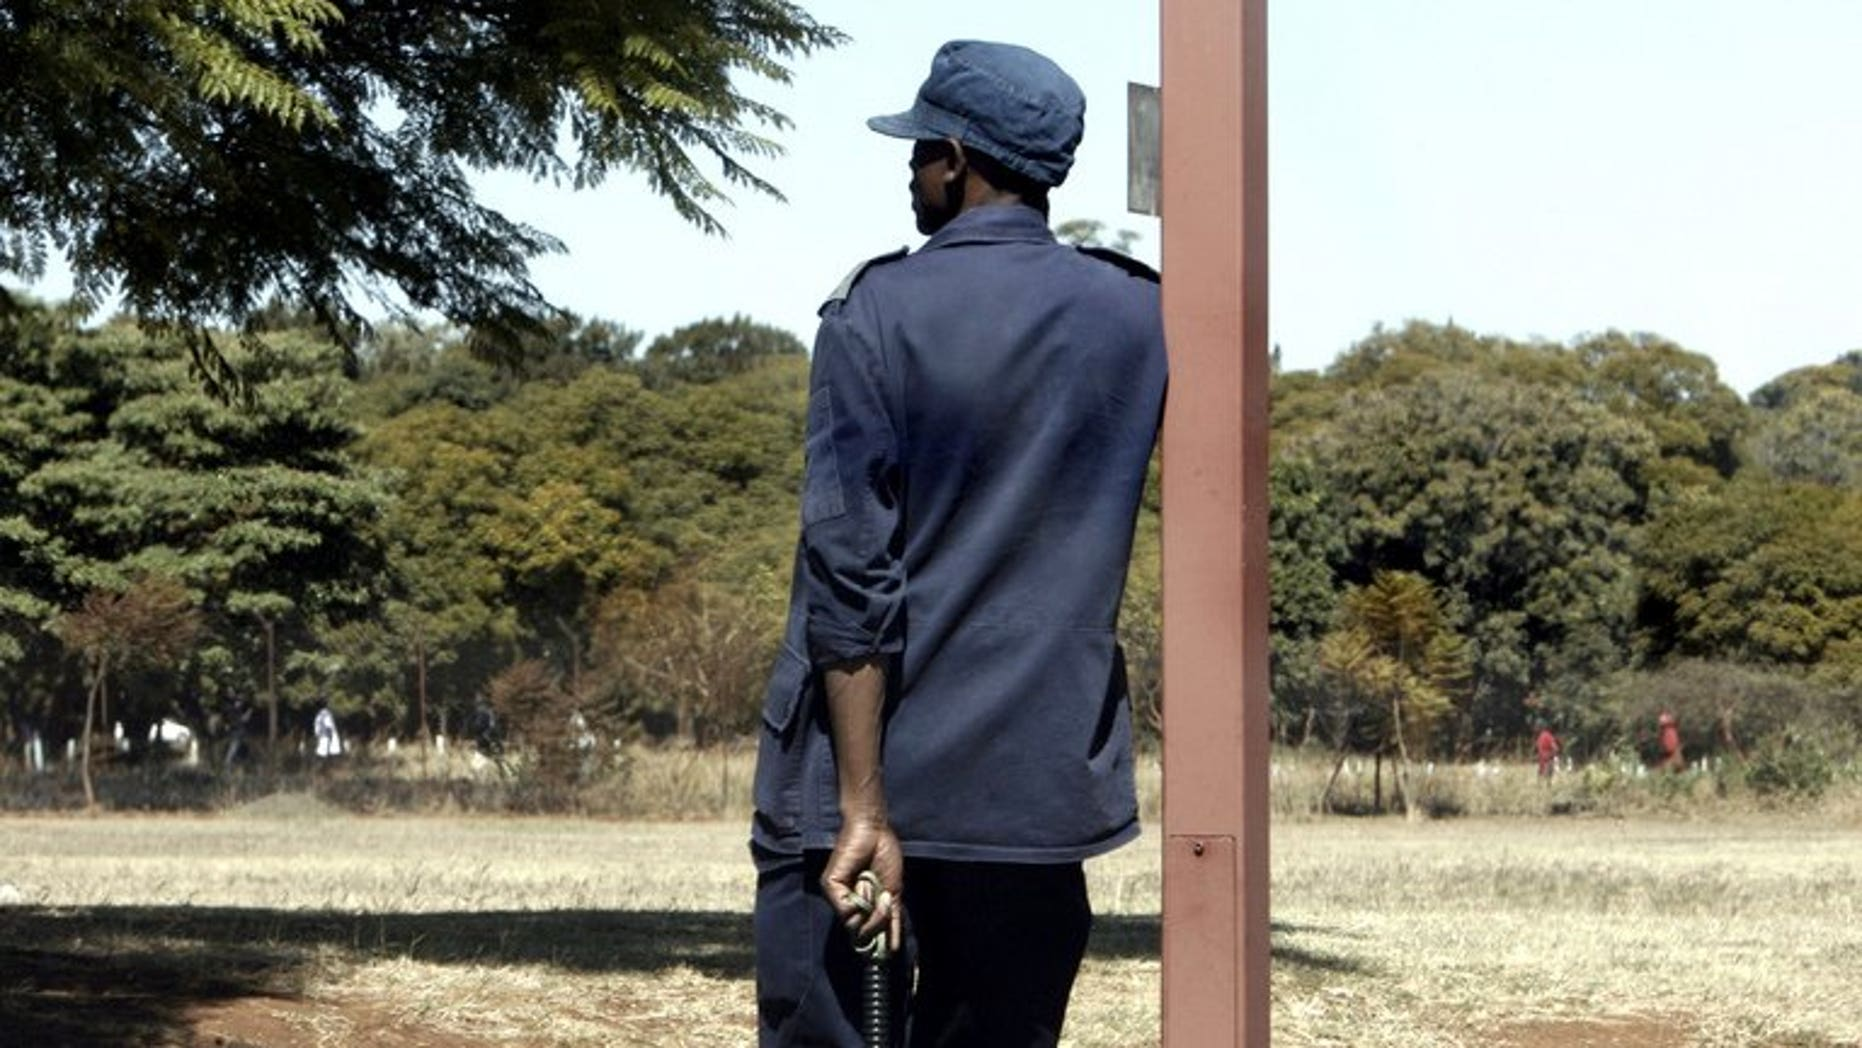 A Zimbabwean police officer stands guard in Harare on June 22, 2008. Zimbabwe's high court ordered the release of 21 opposition activists detained for over two years in connection with the death of a police officer